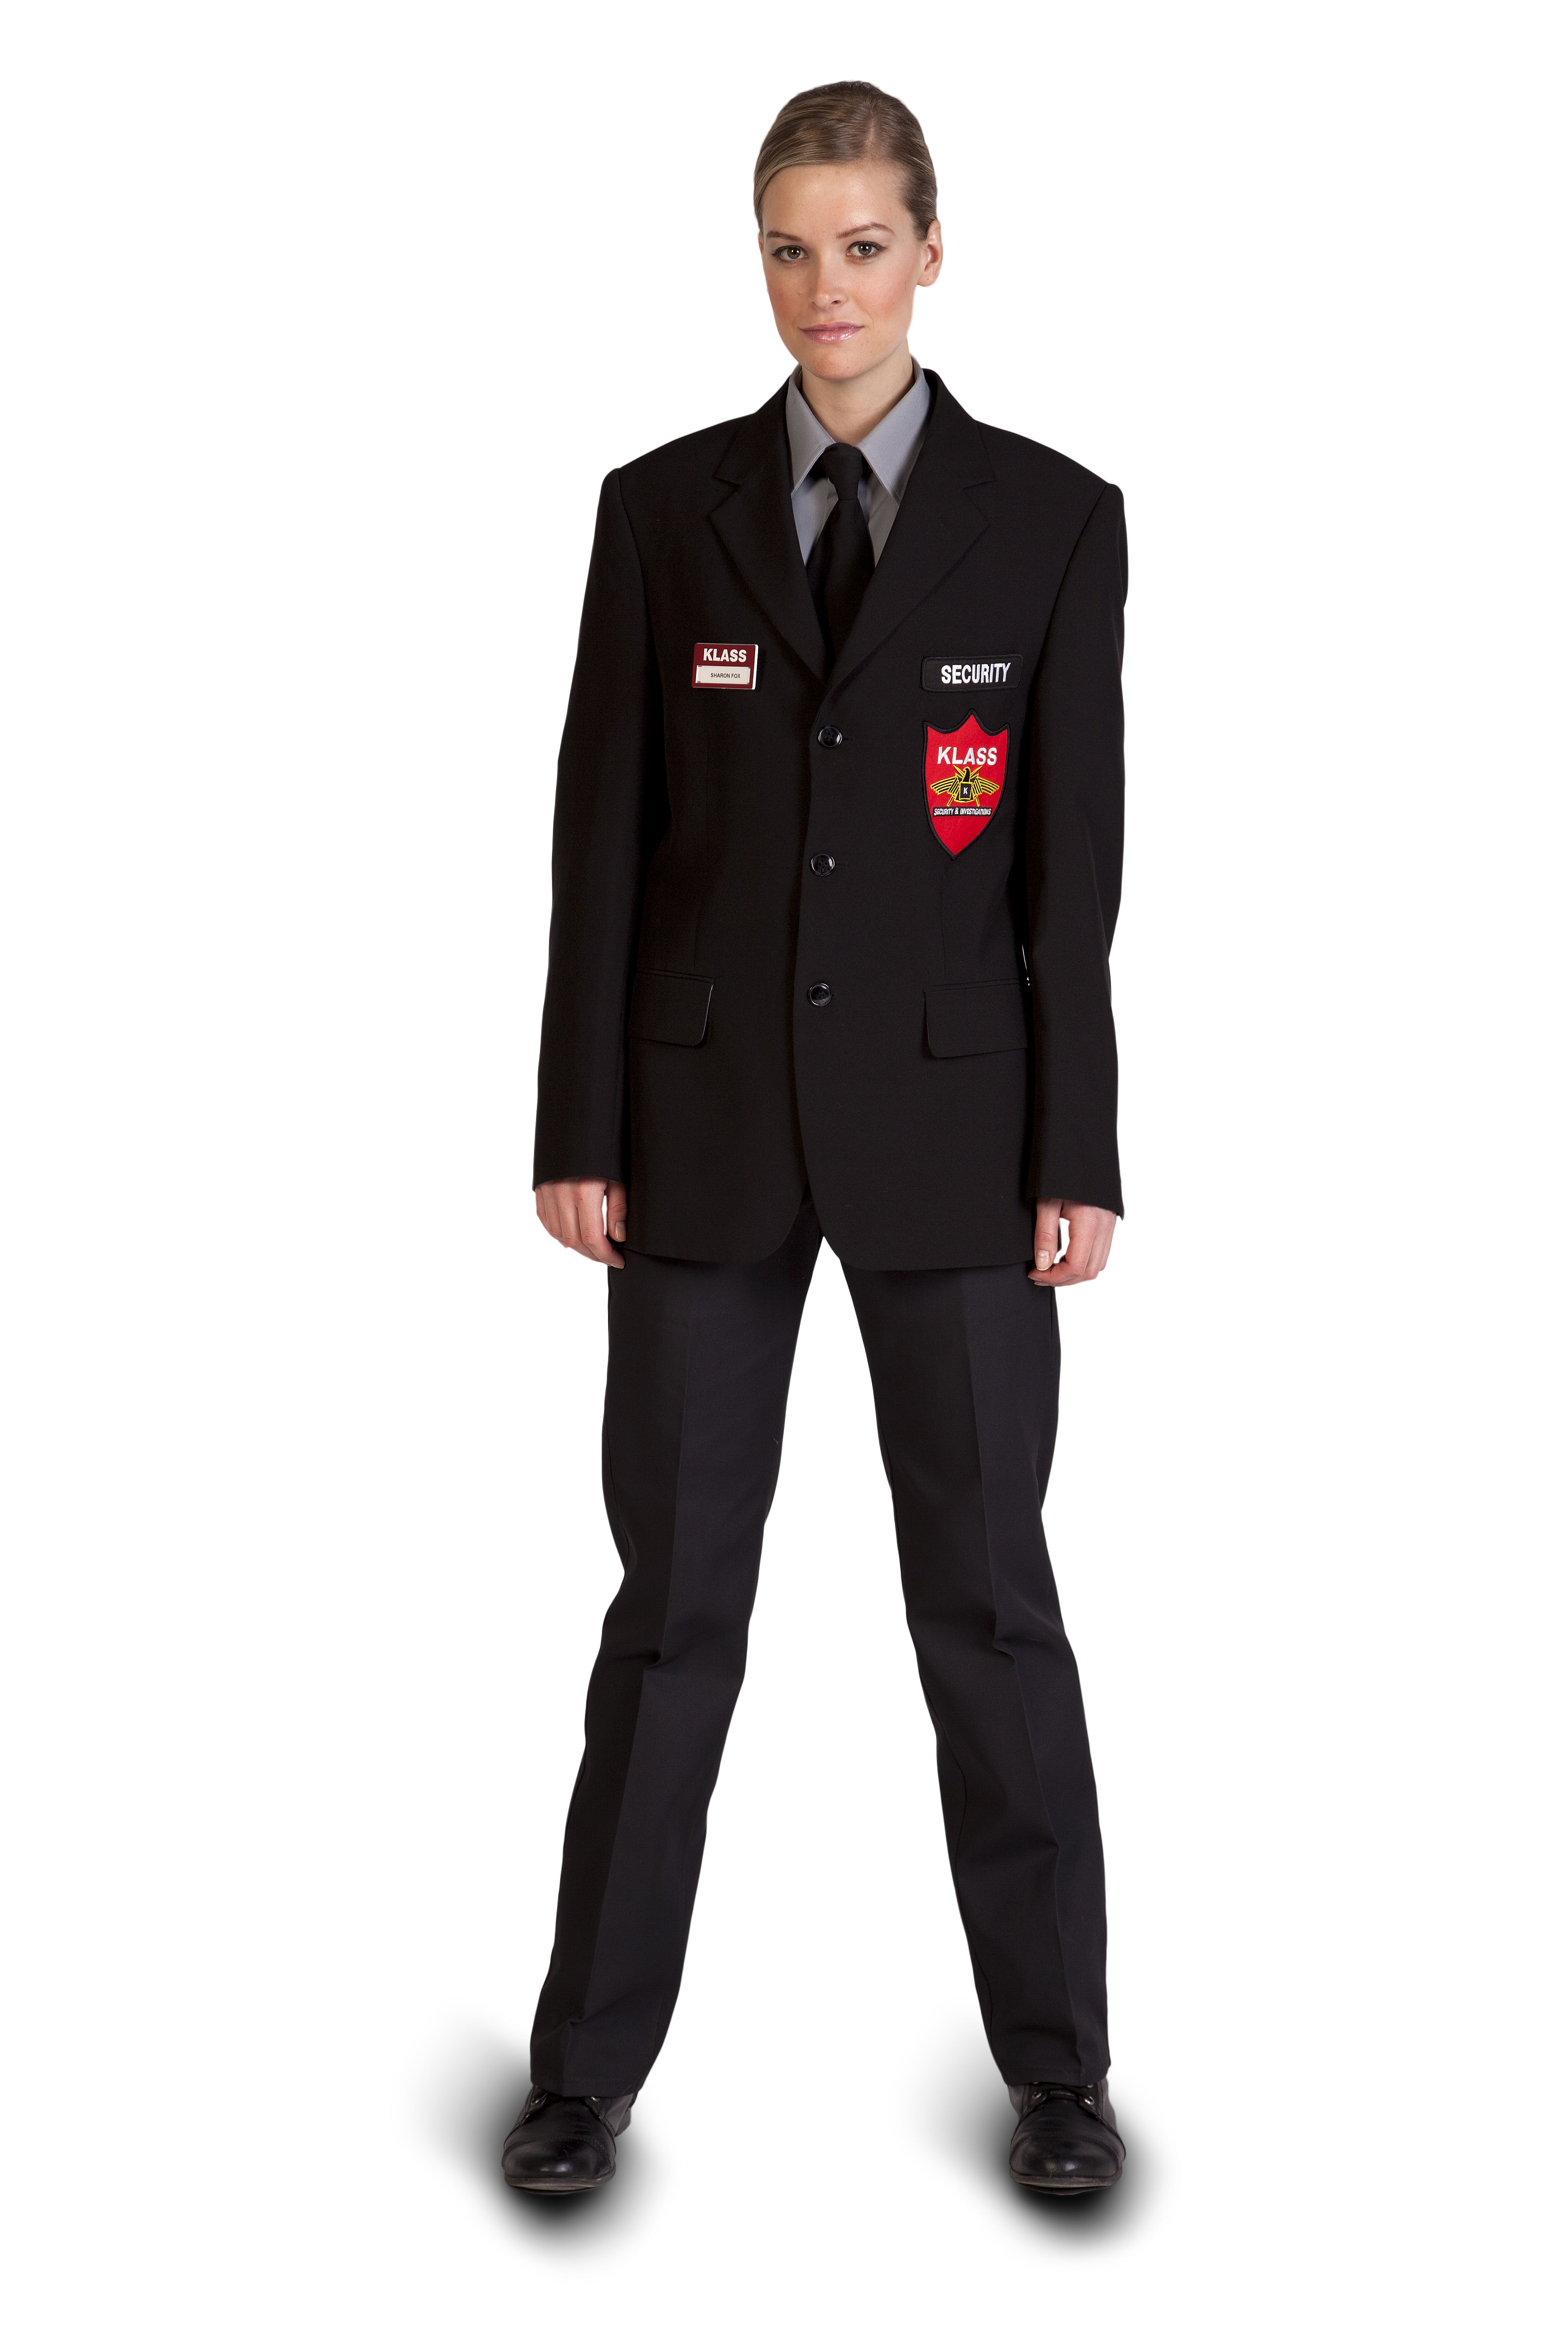 Erin Mills Town Centre Security guard services, Retail